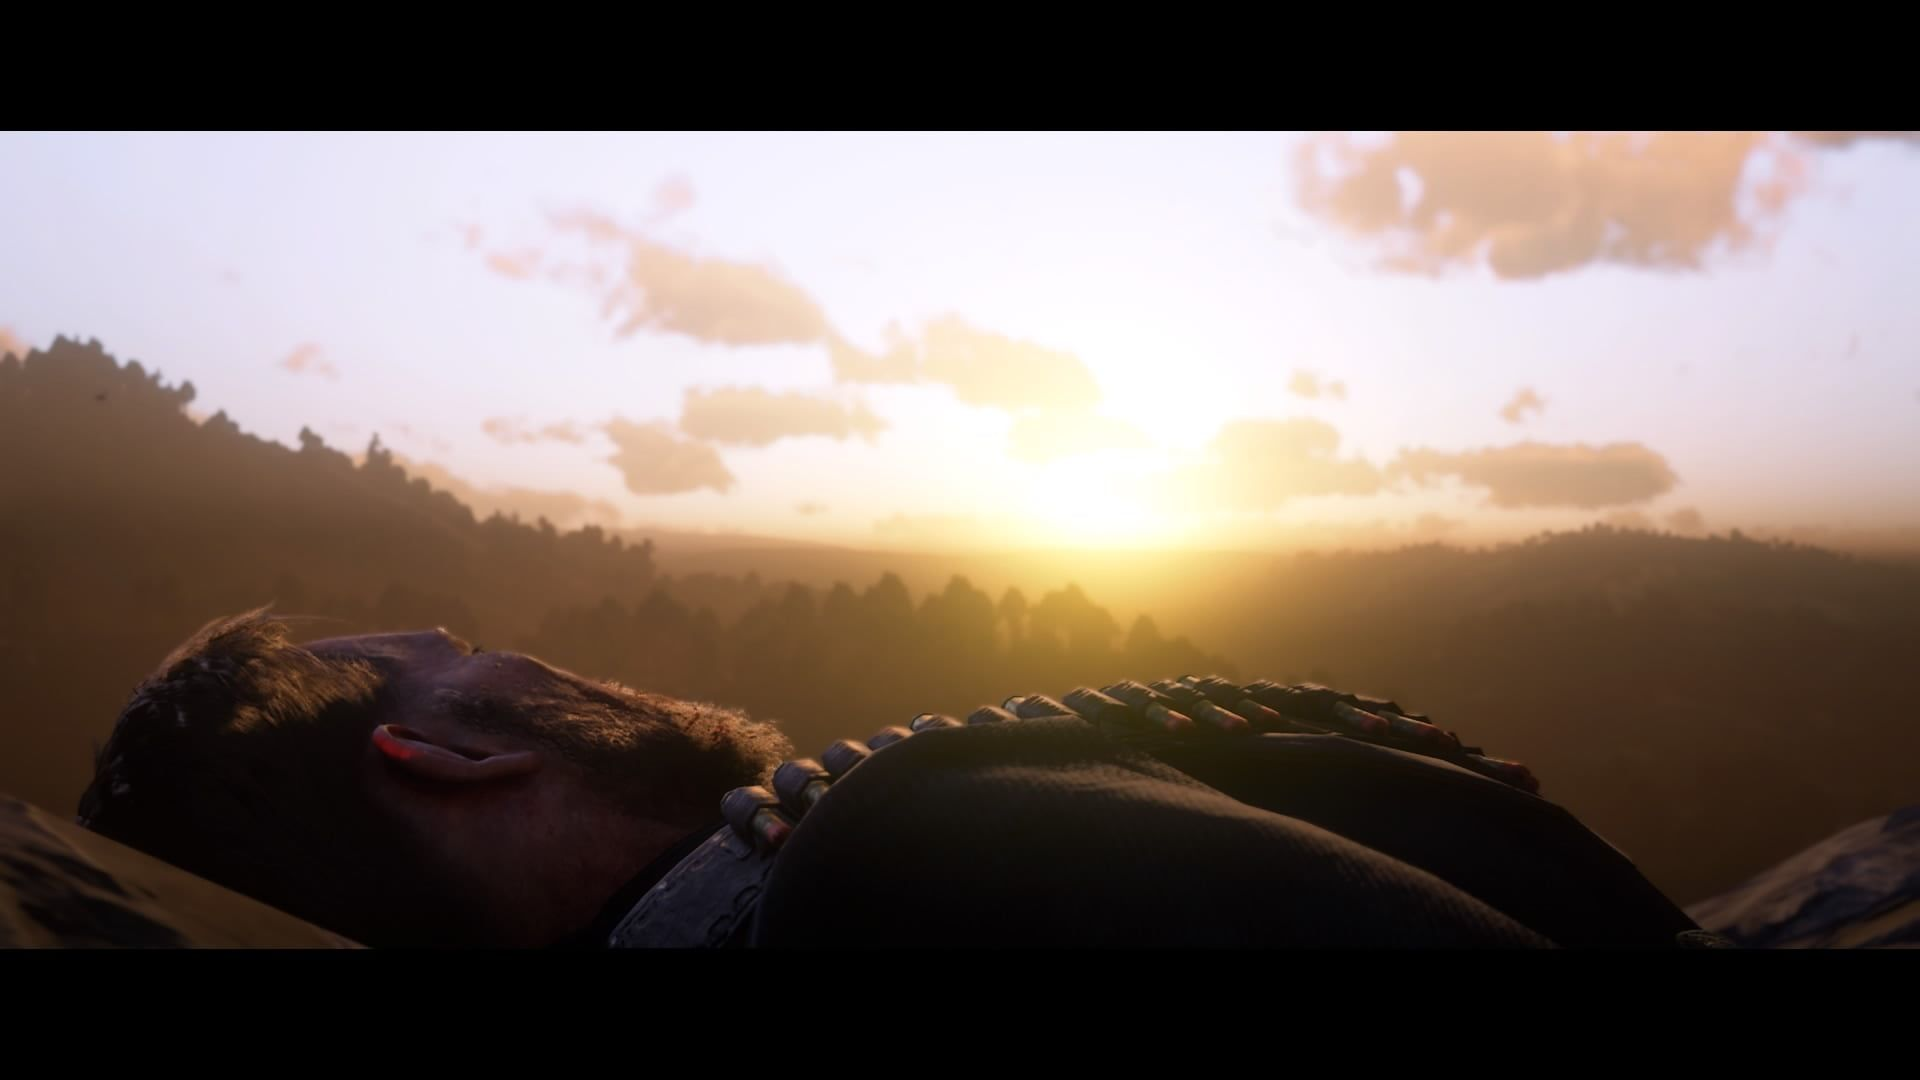 Red Dead Redemption 2 Wallpaper Free Download In 4k Resolution 1080p Red Dead Redemption Wallpaper Free Download Full Hd Wallpaper